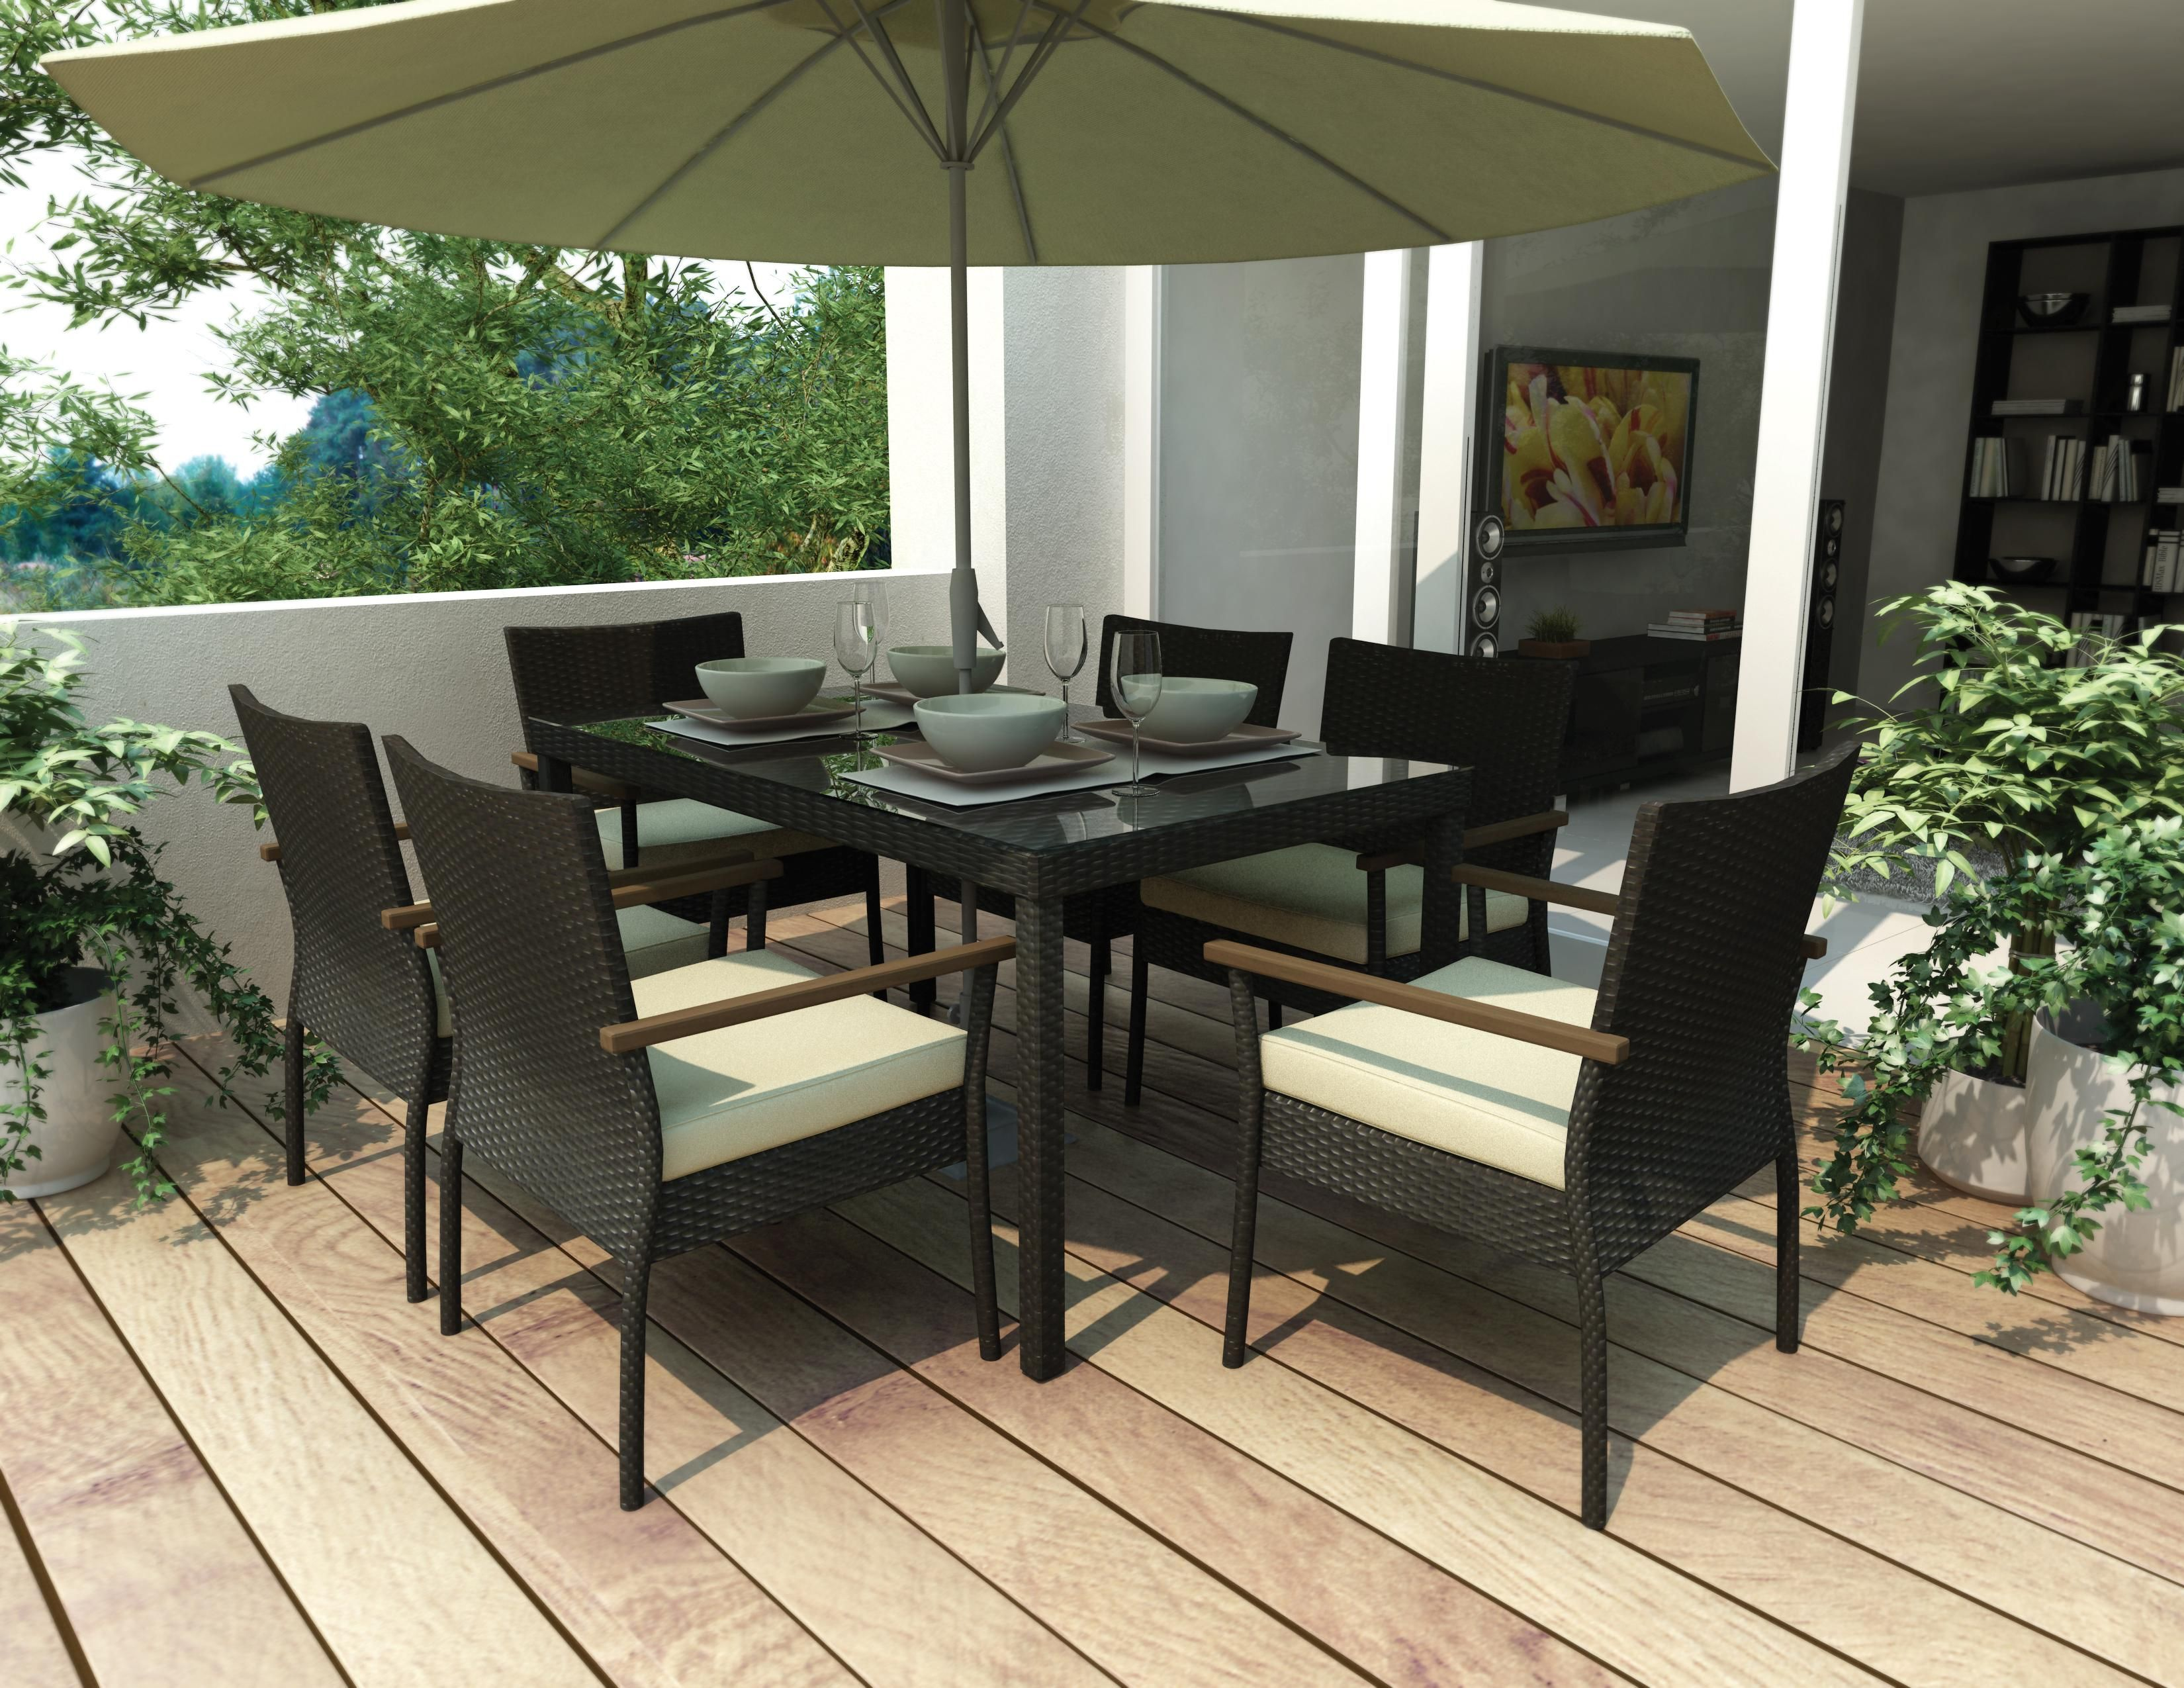 Patio Furniture With Umbrella Hole Outdoor End Table